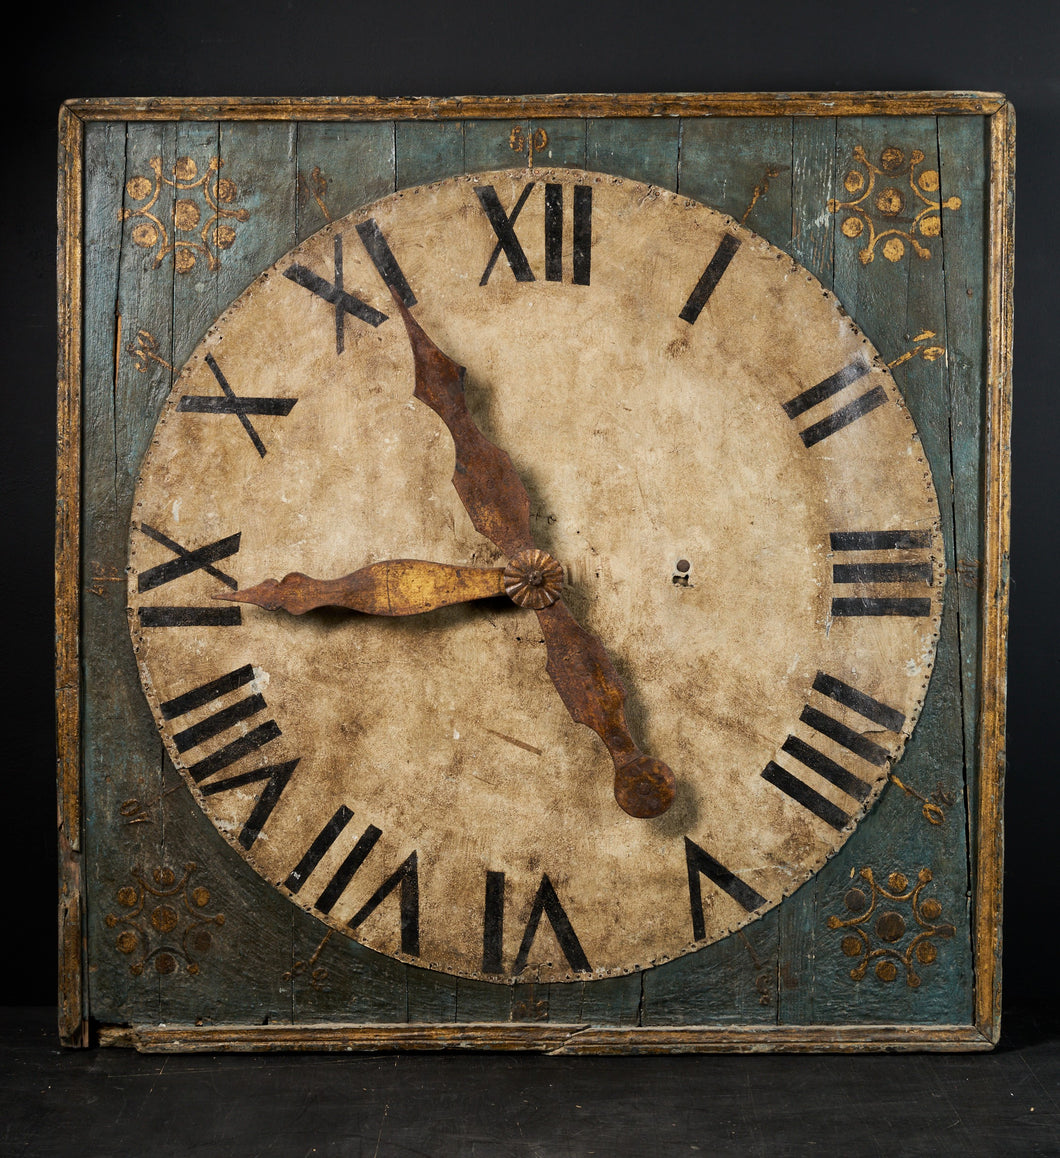 Monumental early 19th C. Clock on a Polychromed pannel with hands in golden metal fixed on a tin sheet.